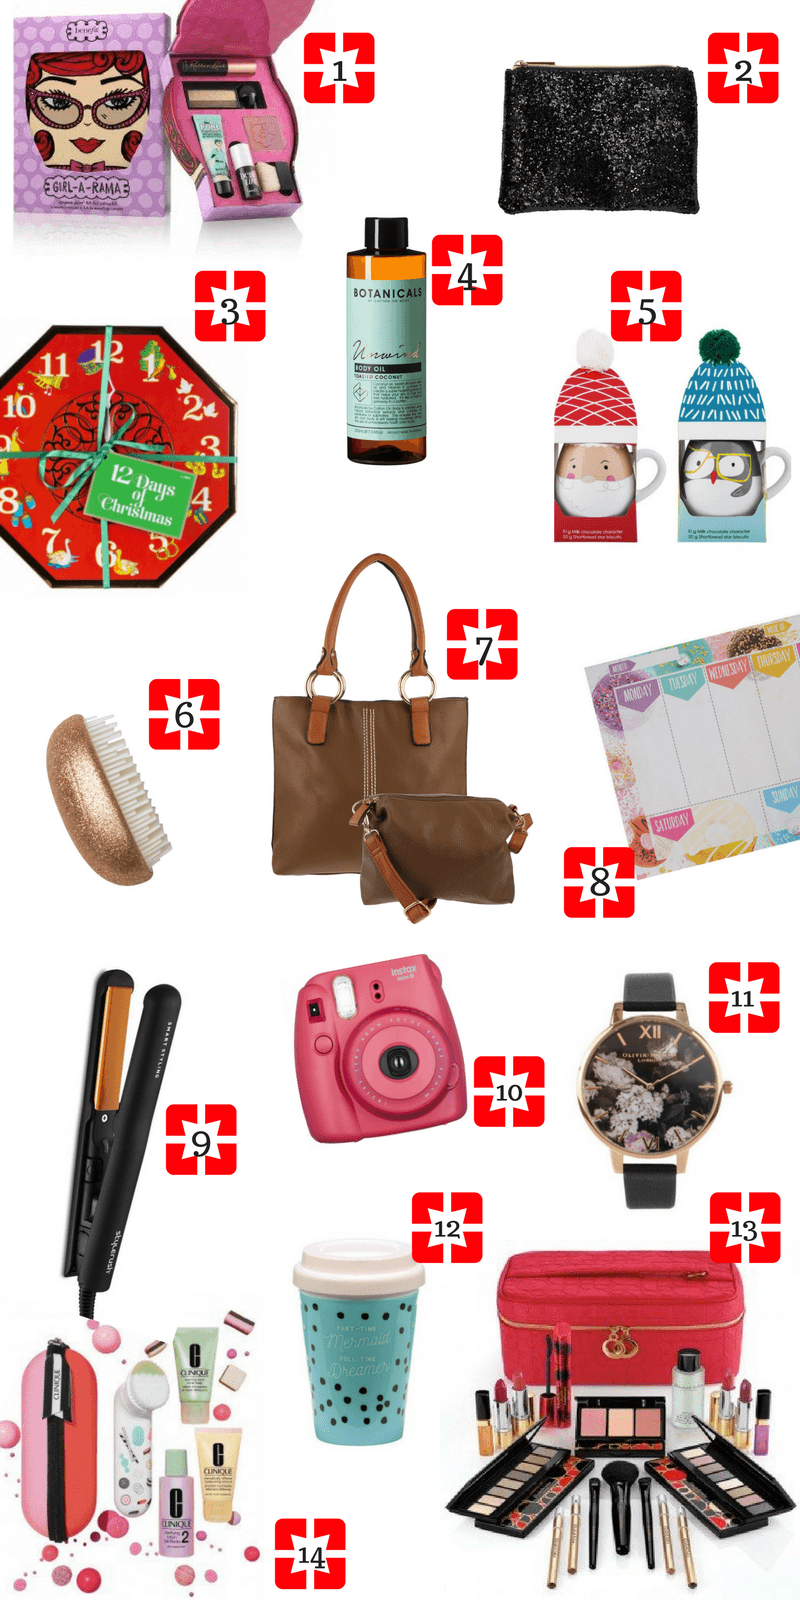 Christmas Gifts for Her - By Megan Kelly